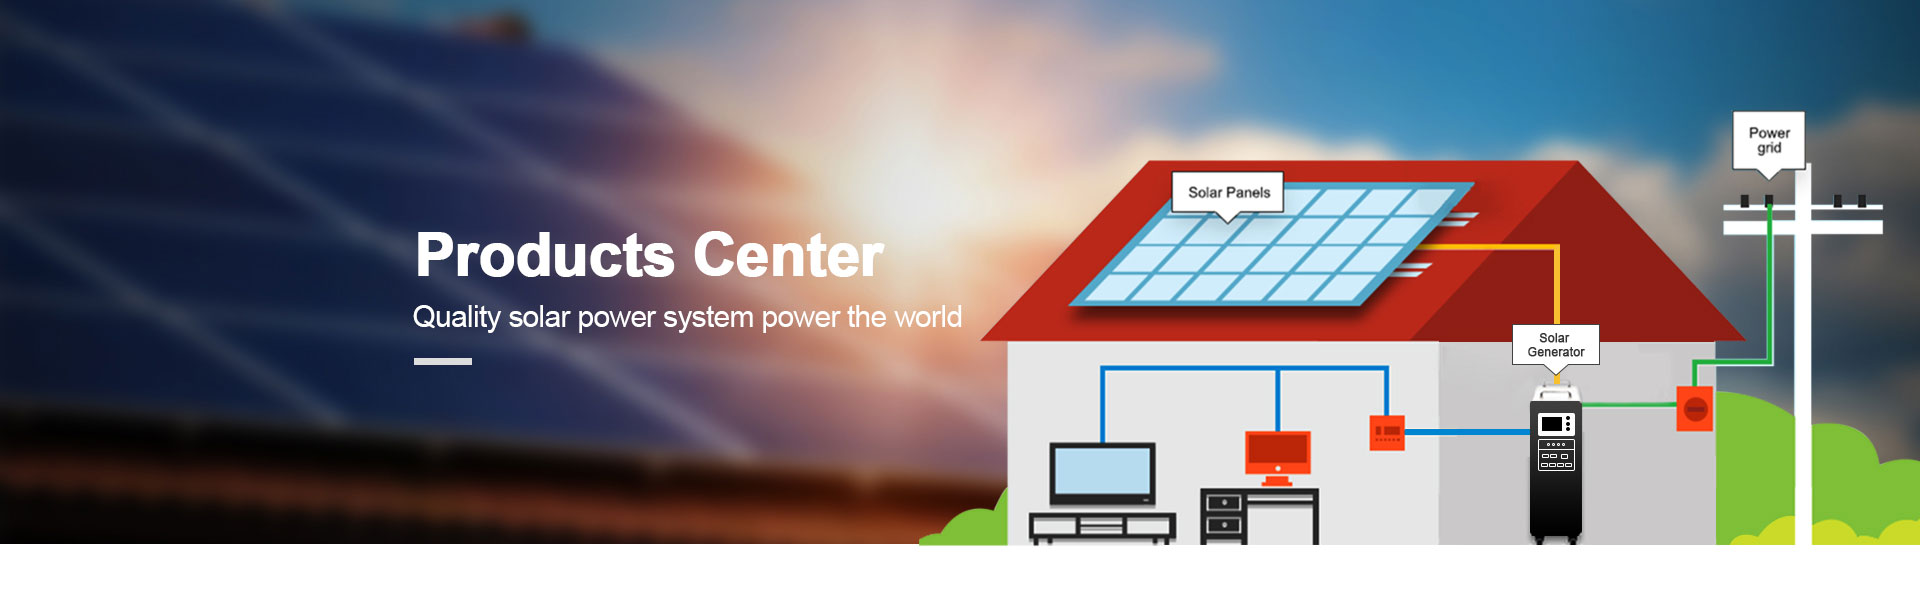 Solar-power-system-and-related-products